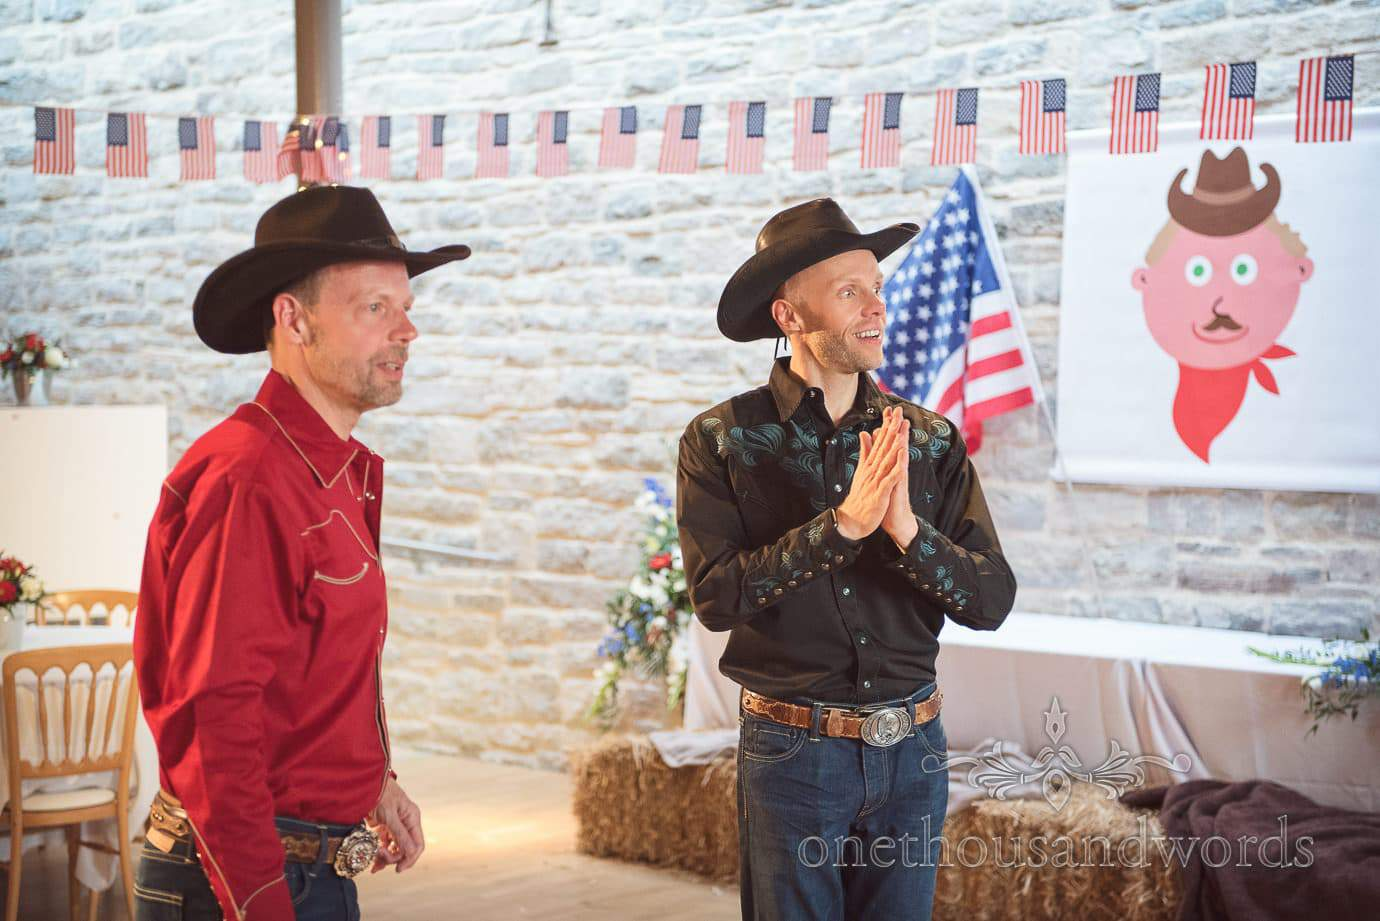 Gay wedding cowboy grooms at American themed barn dance wedding evening